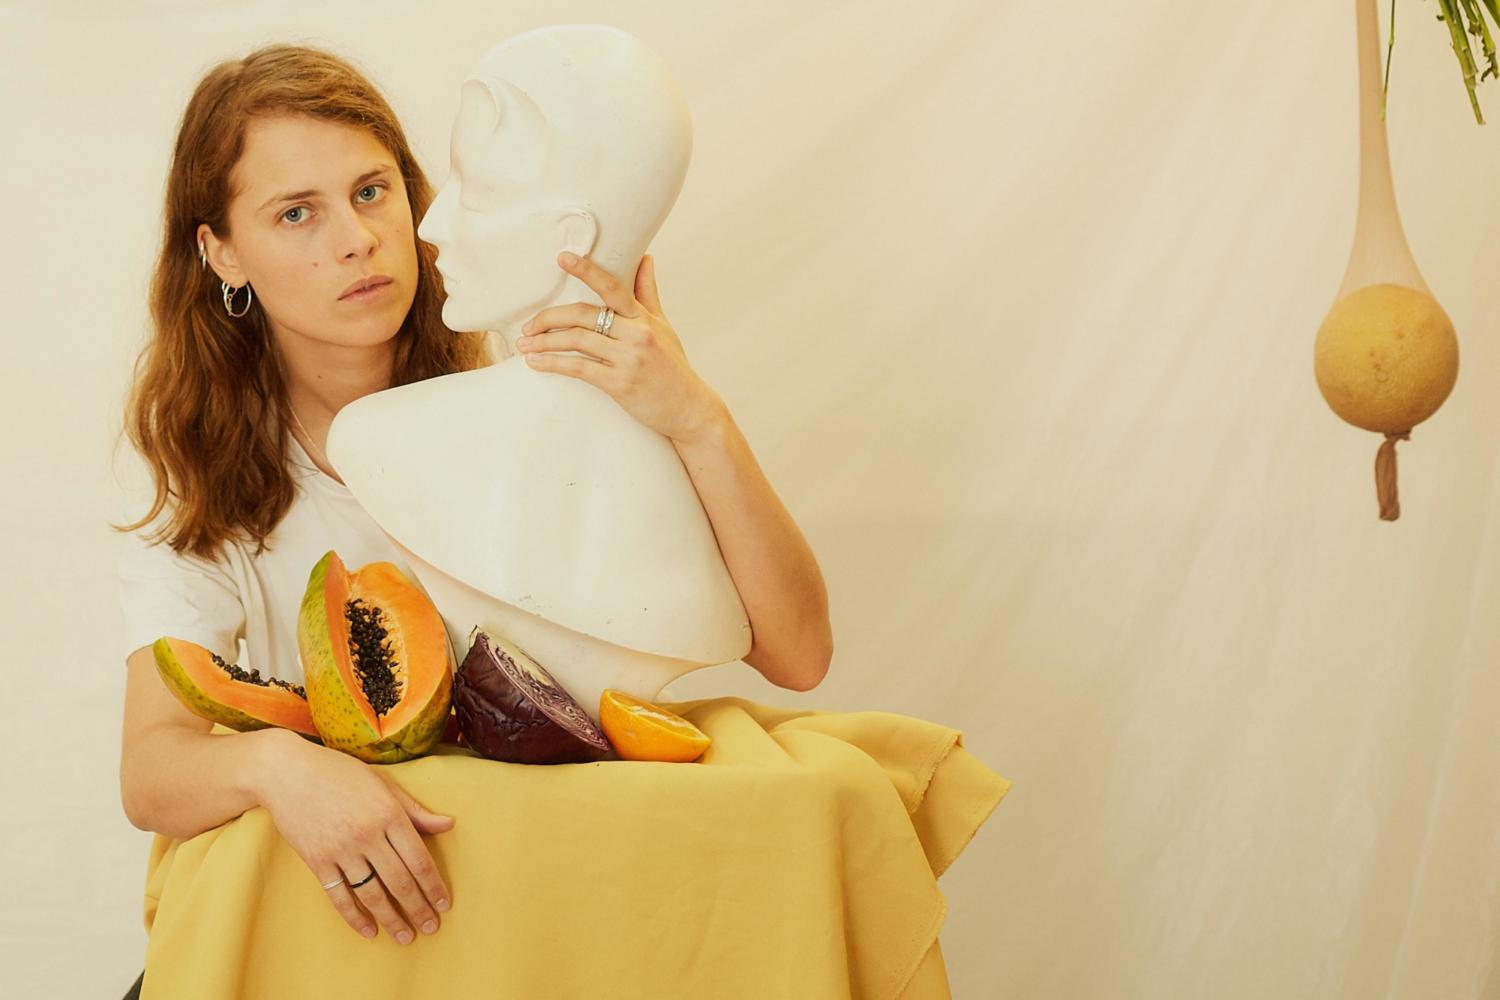 Marika Hackman announces new album 'Covers'